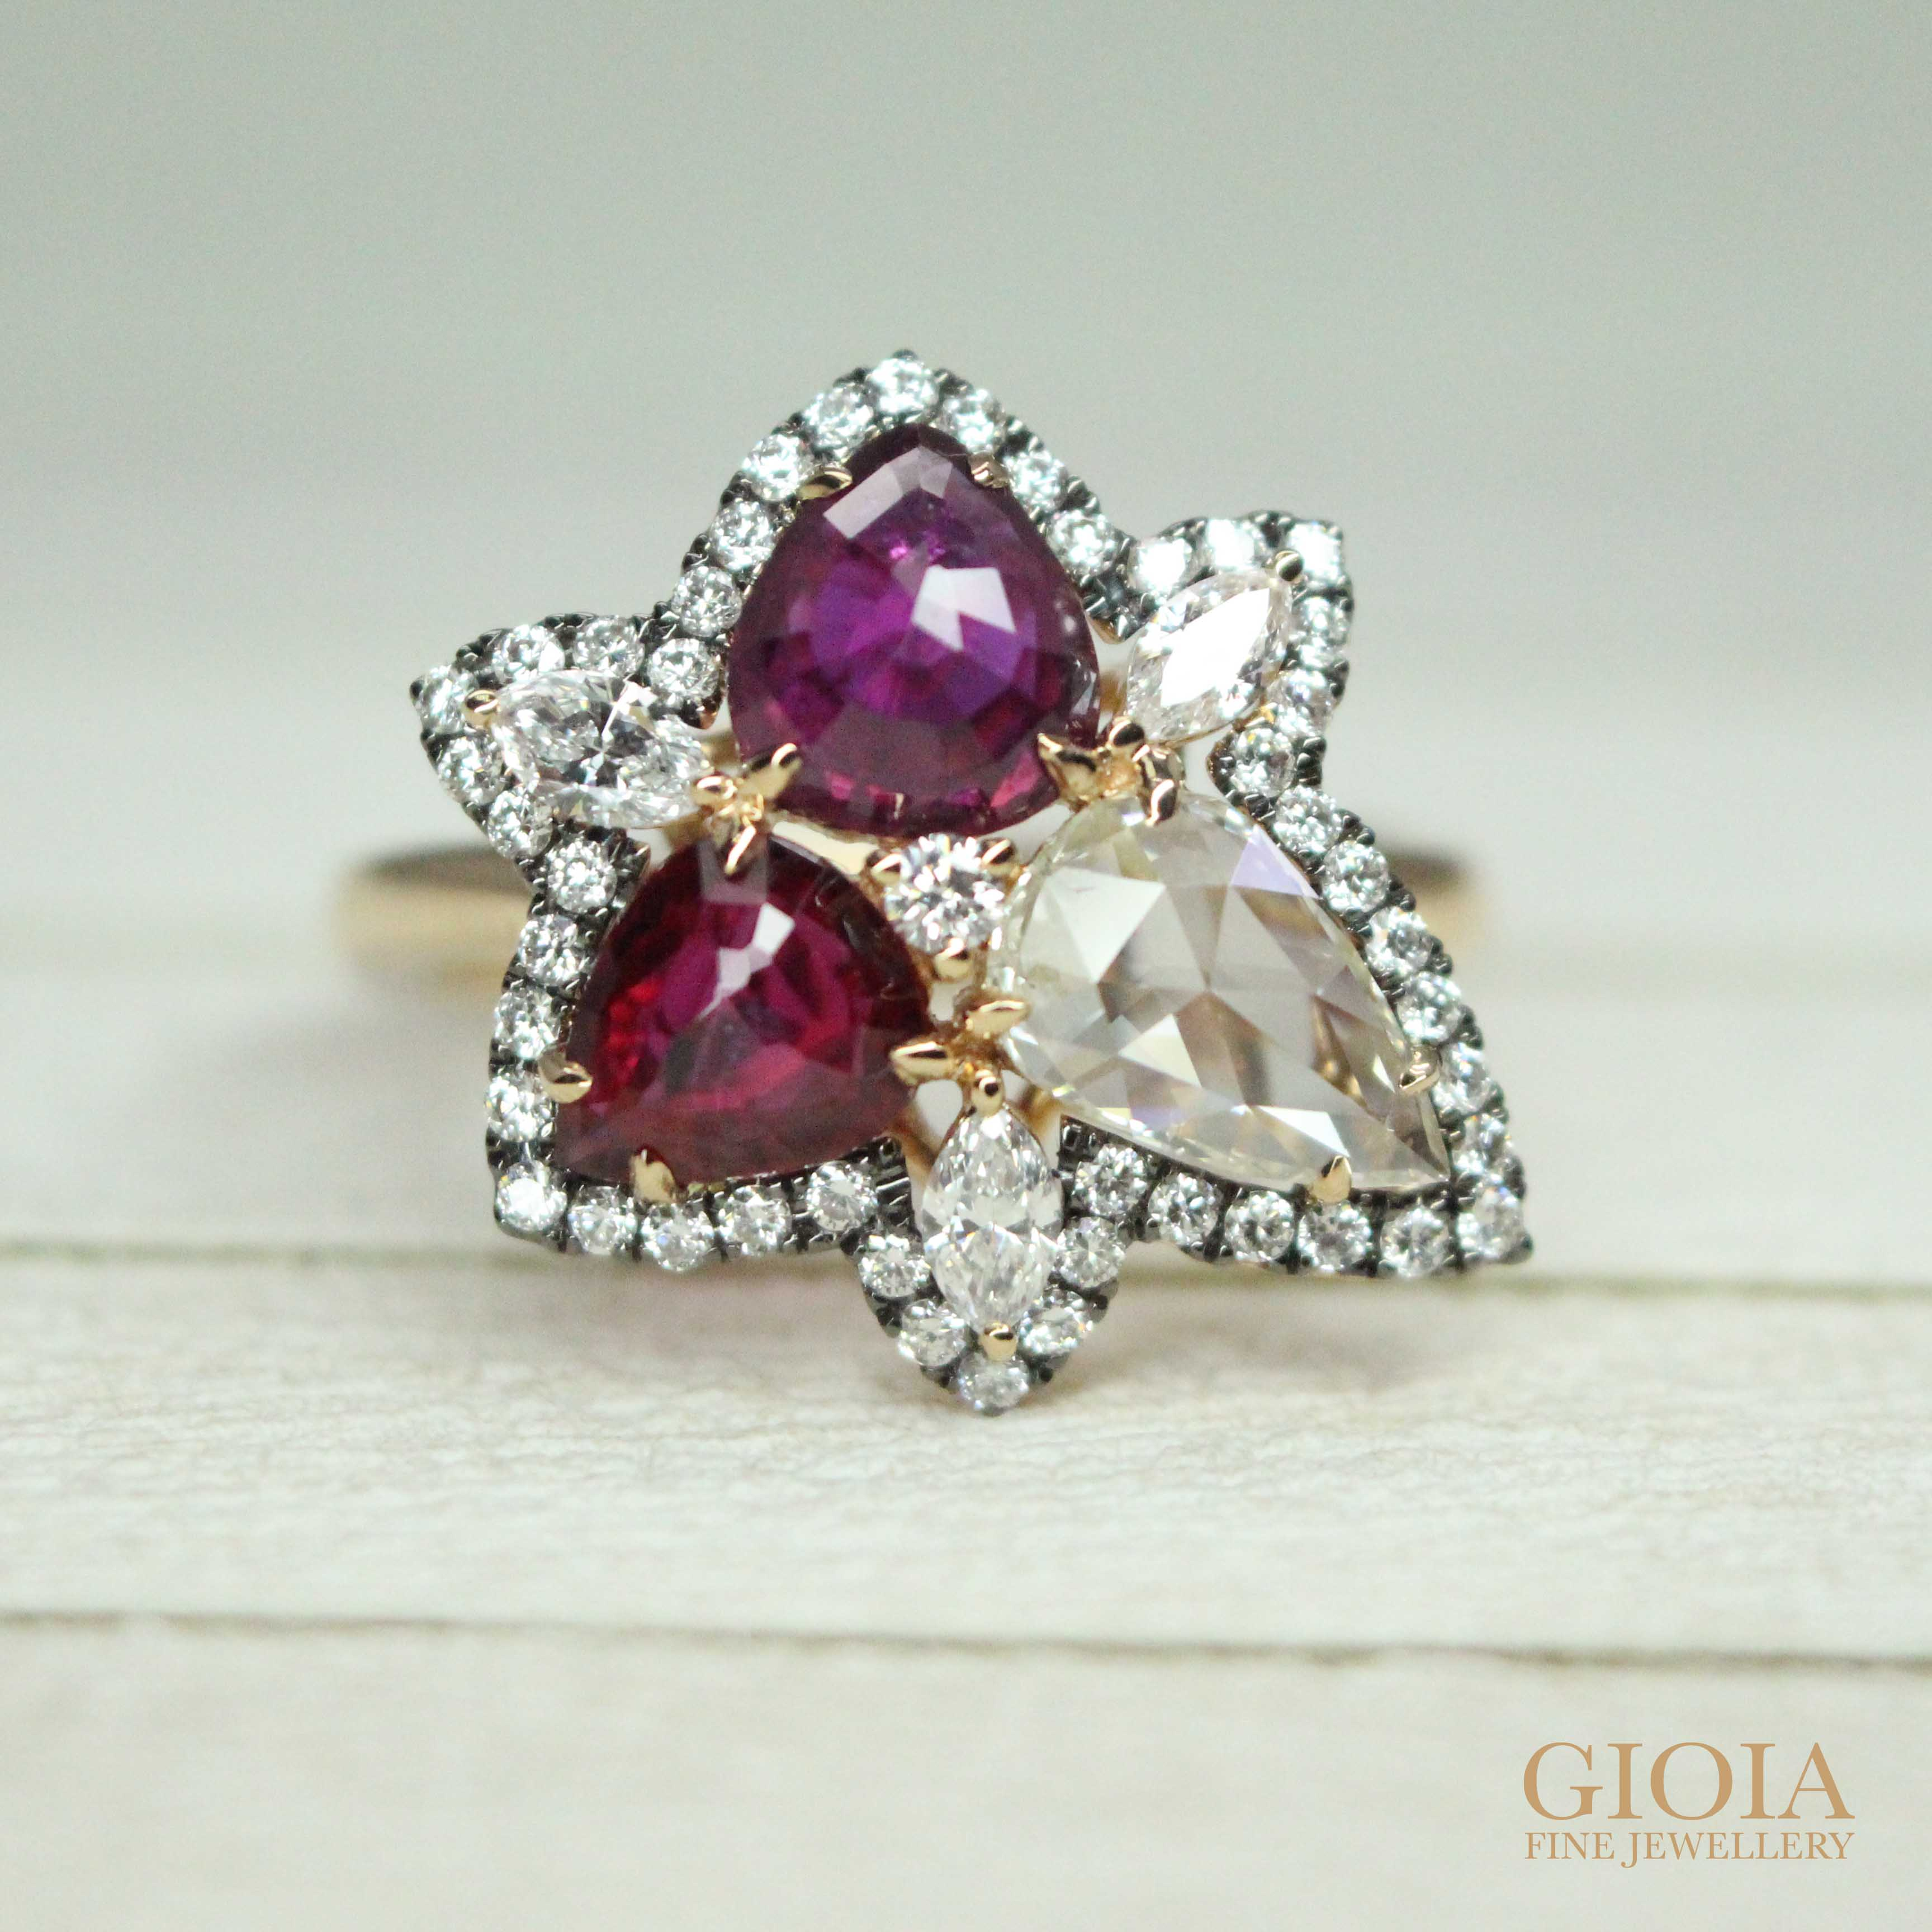 Modified rose-cut shape Ruby and Diamond, customised to a cluster ring with round brilliant halo diamond | Singapore Private Jeweller in bespoke customised fine jewellery - Designer Jewellery with unique personal style